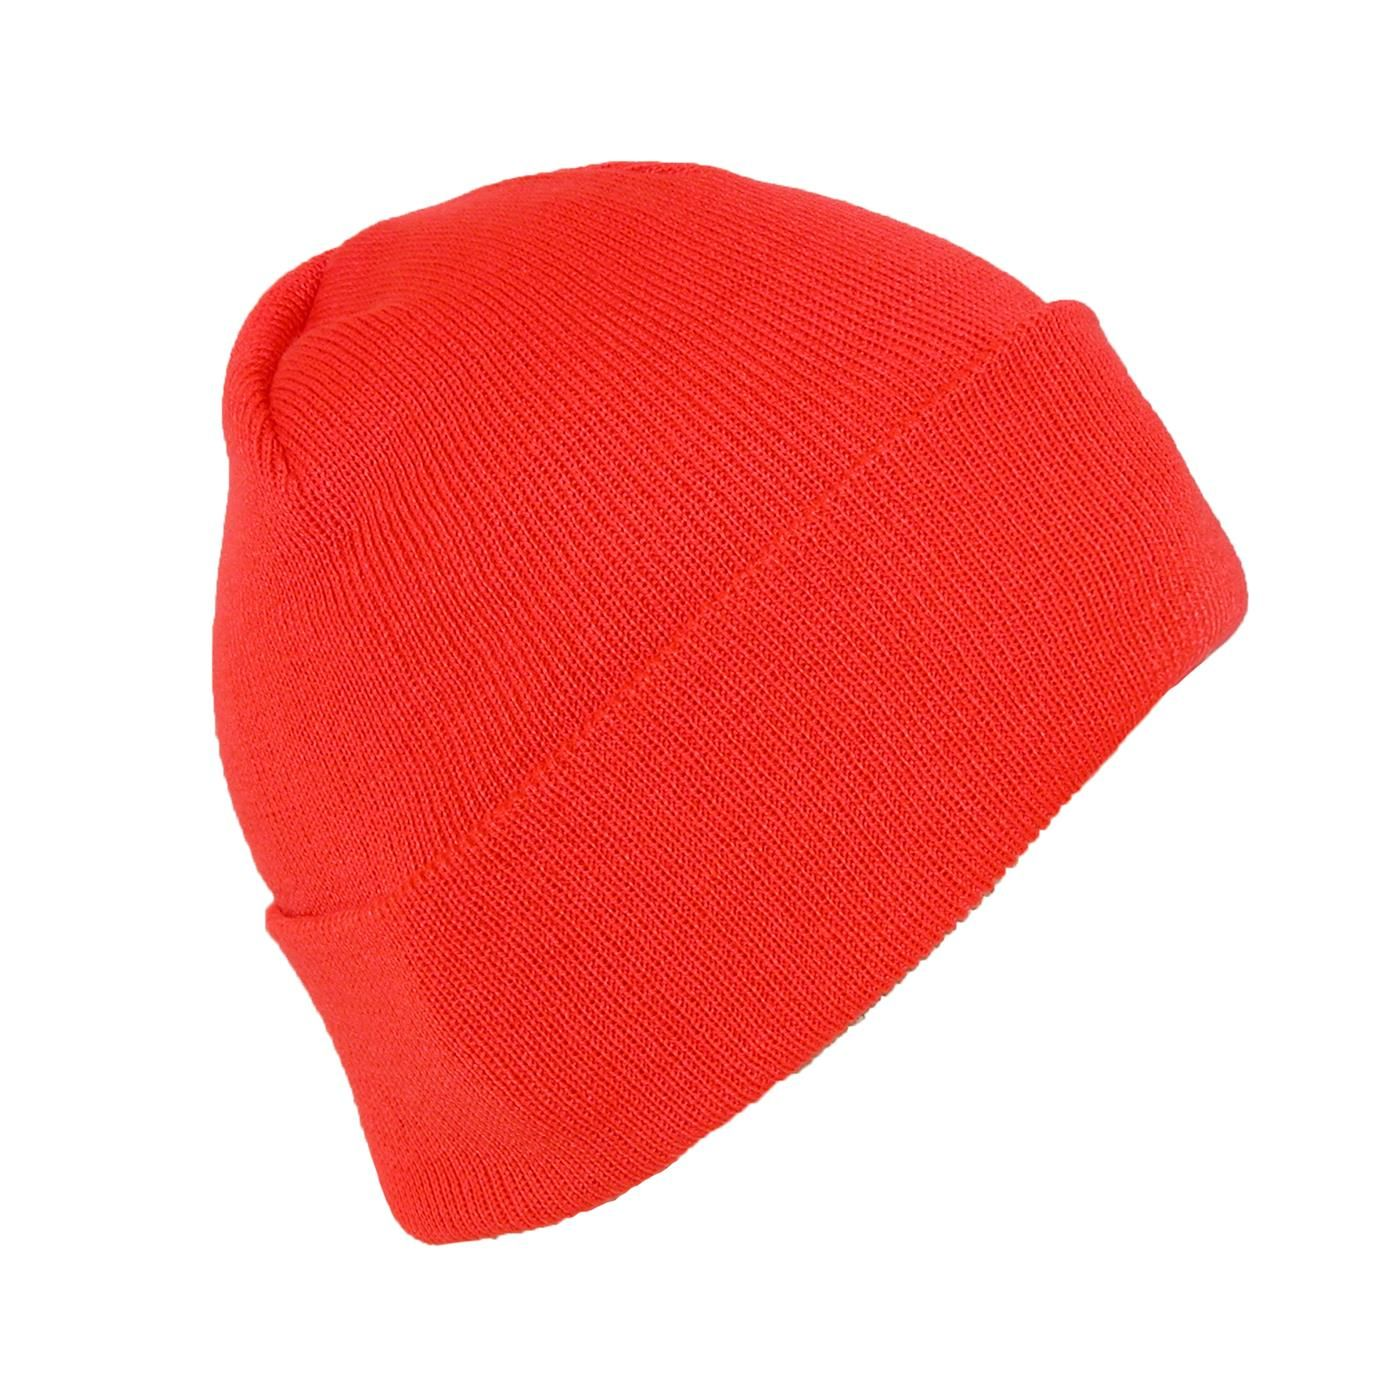 2857dcc104e The soft acrylic knit offers 12 inches of weather protection. The long  length provides a